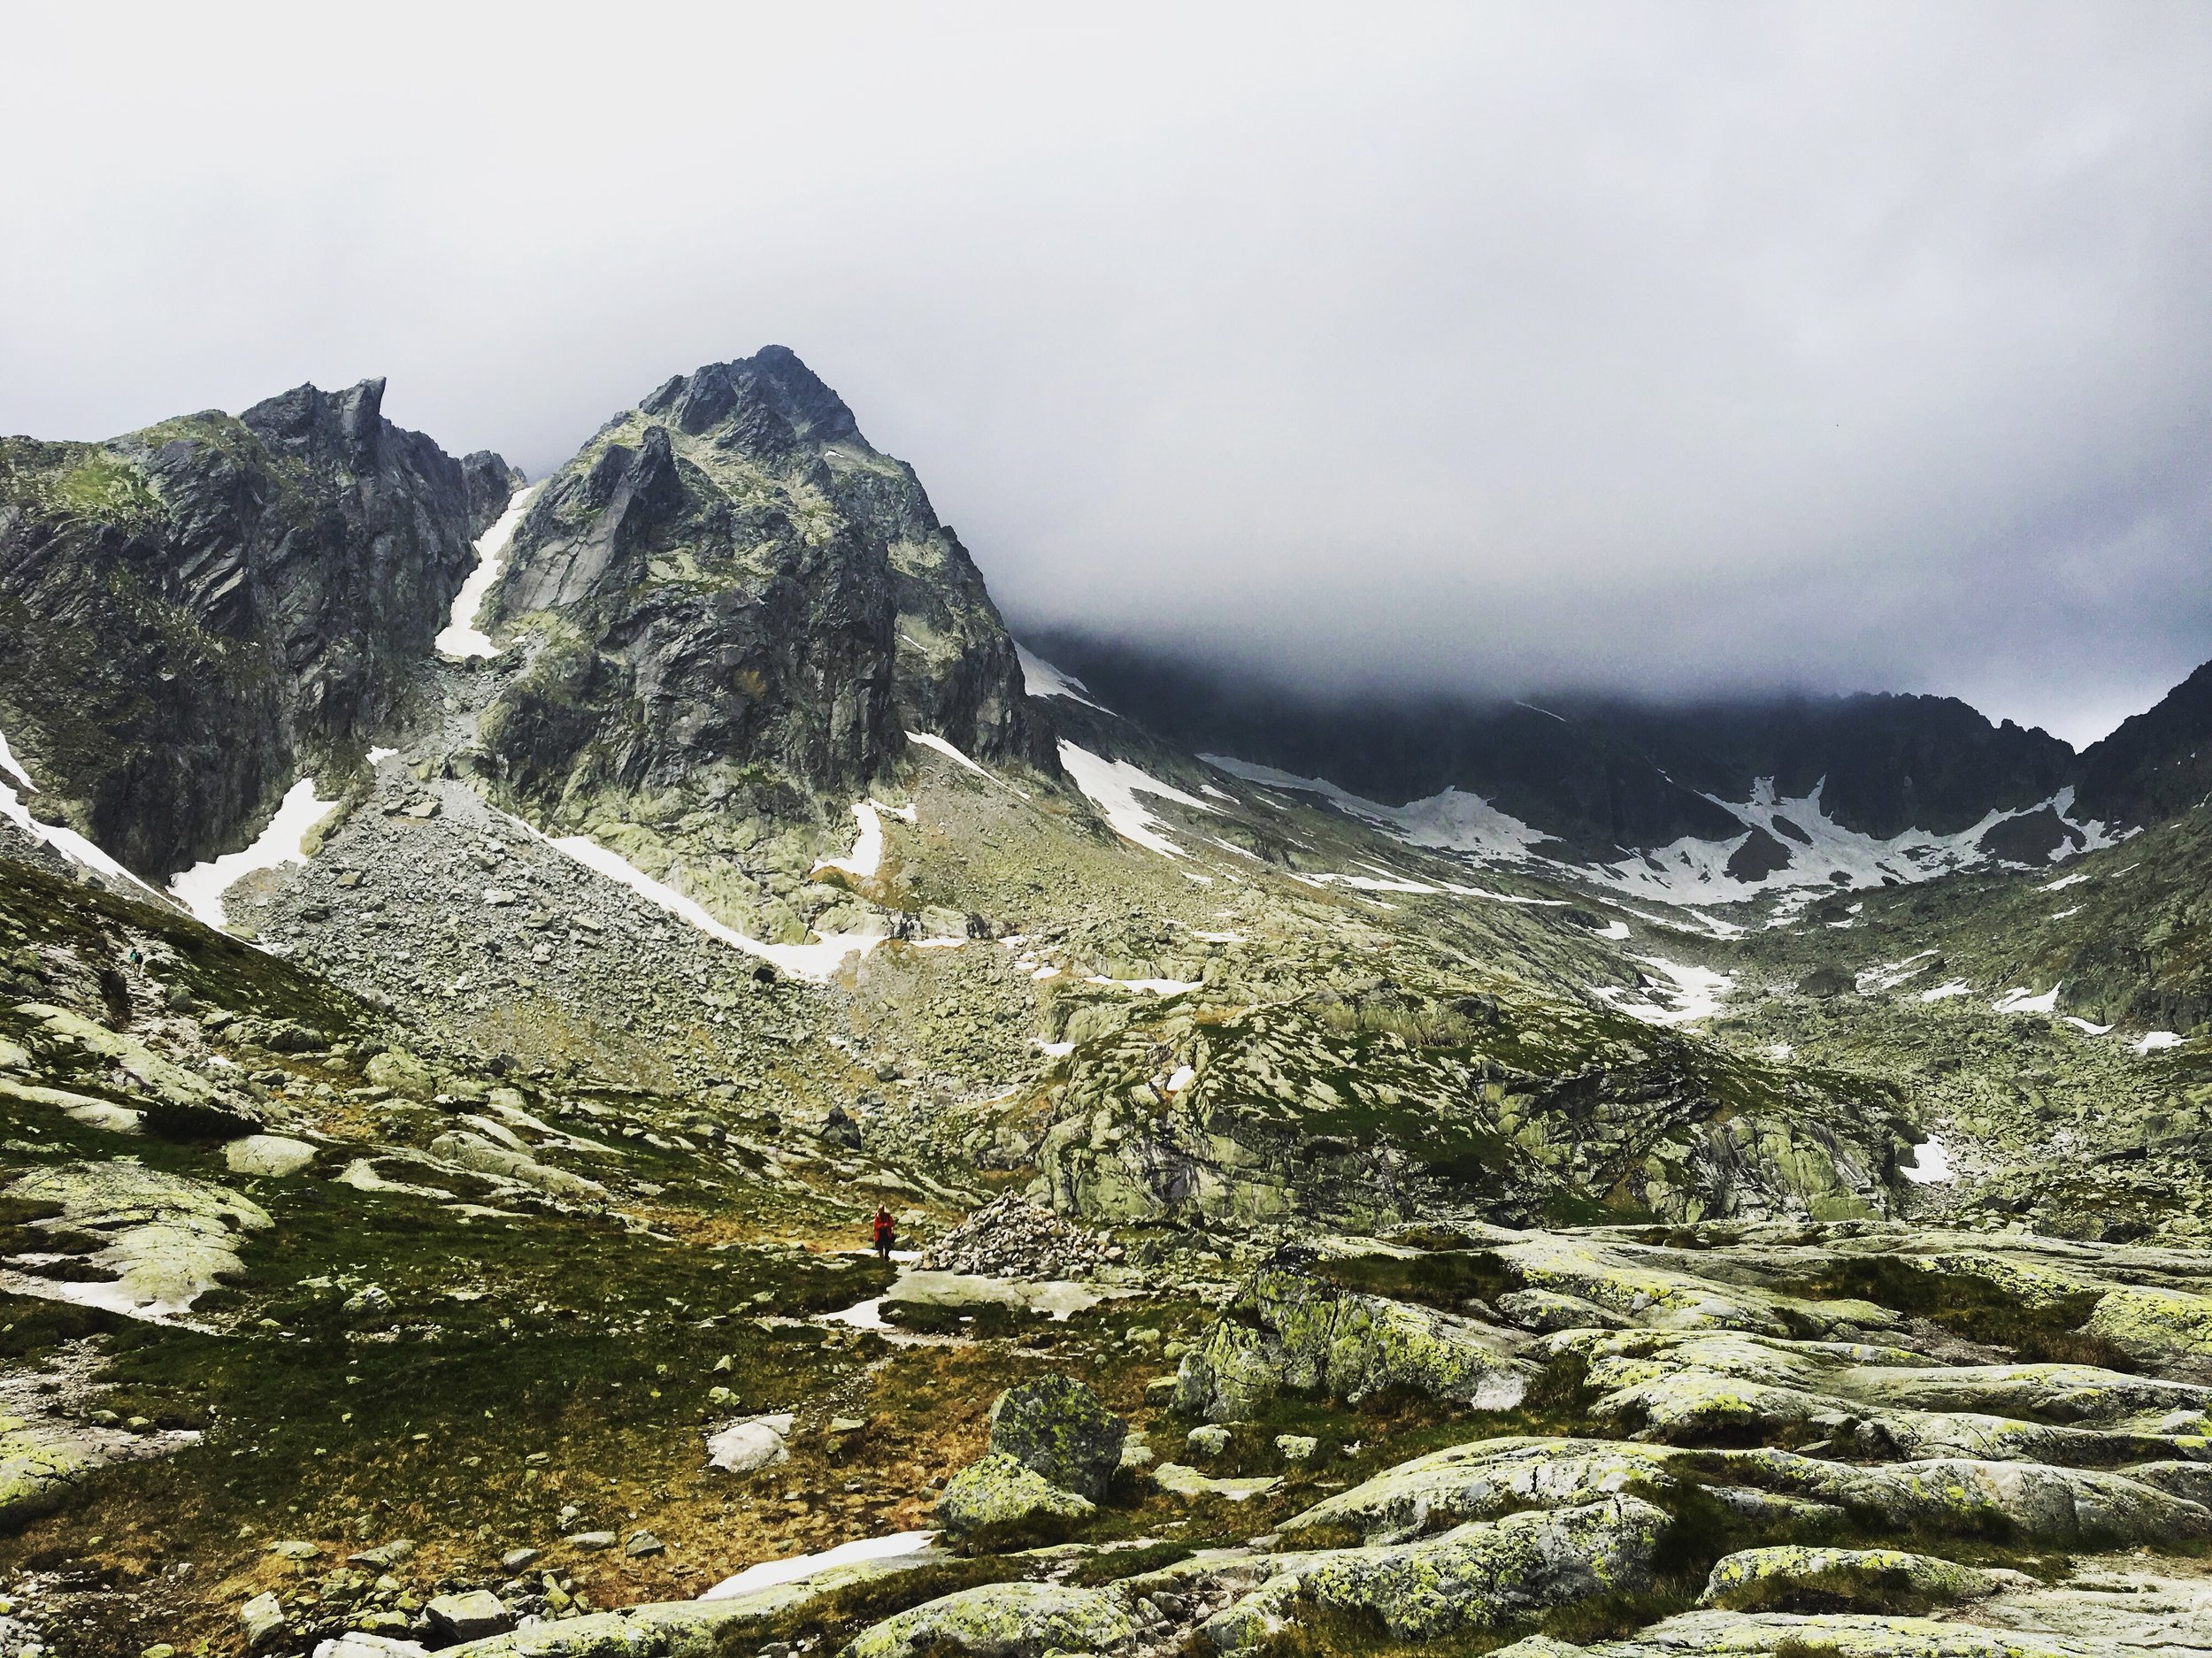 The tormented weather in the High Tatras doesn't discourage some hikers